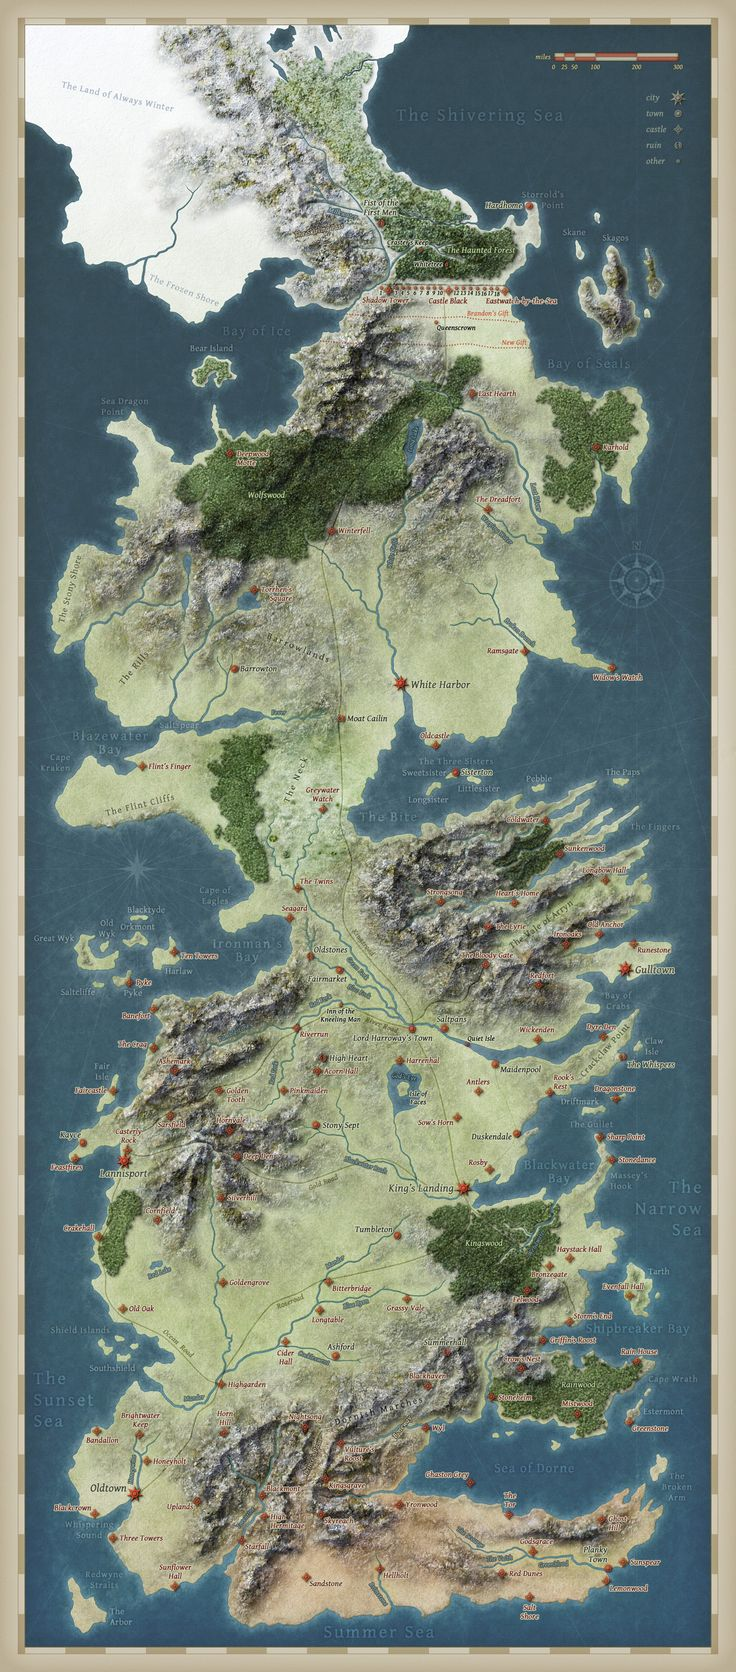 Strange how in small size I knew this was Westeros without even seeing the names.